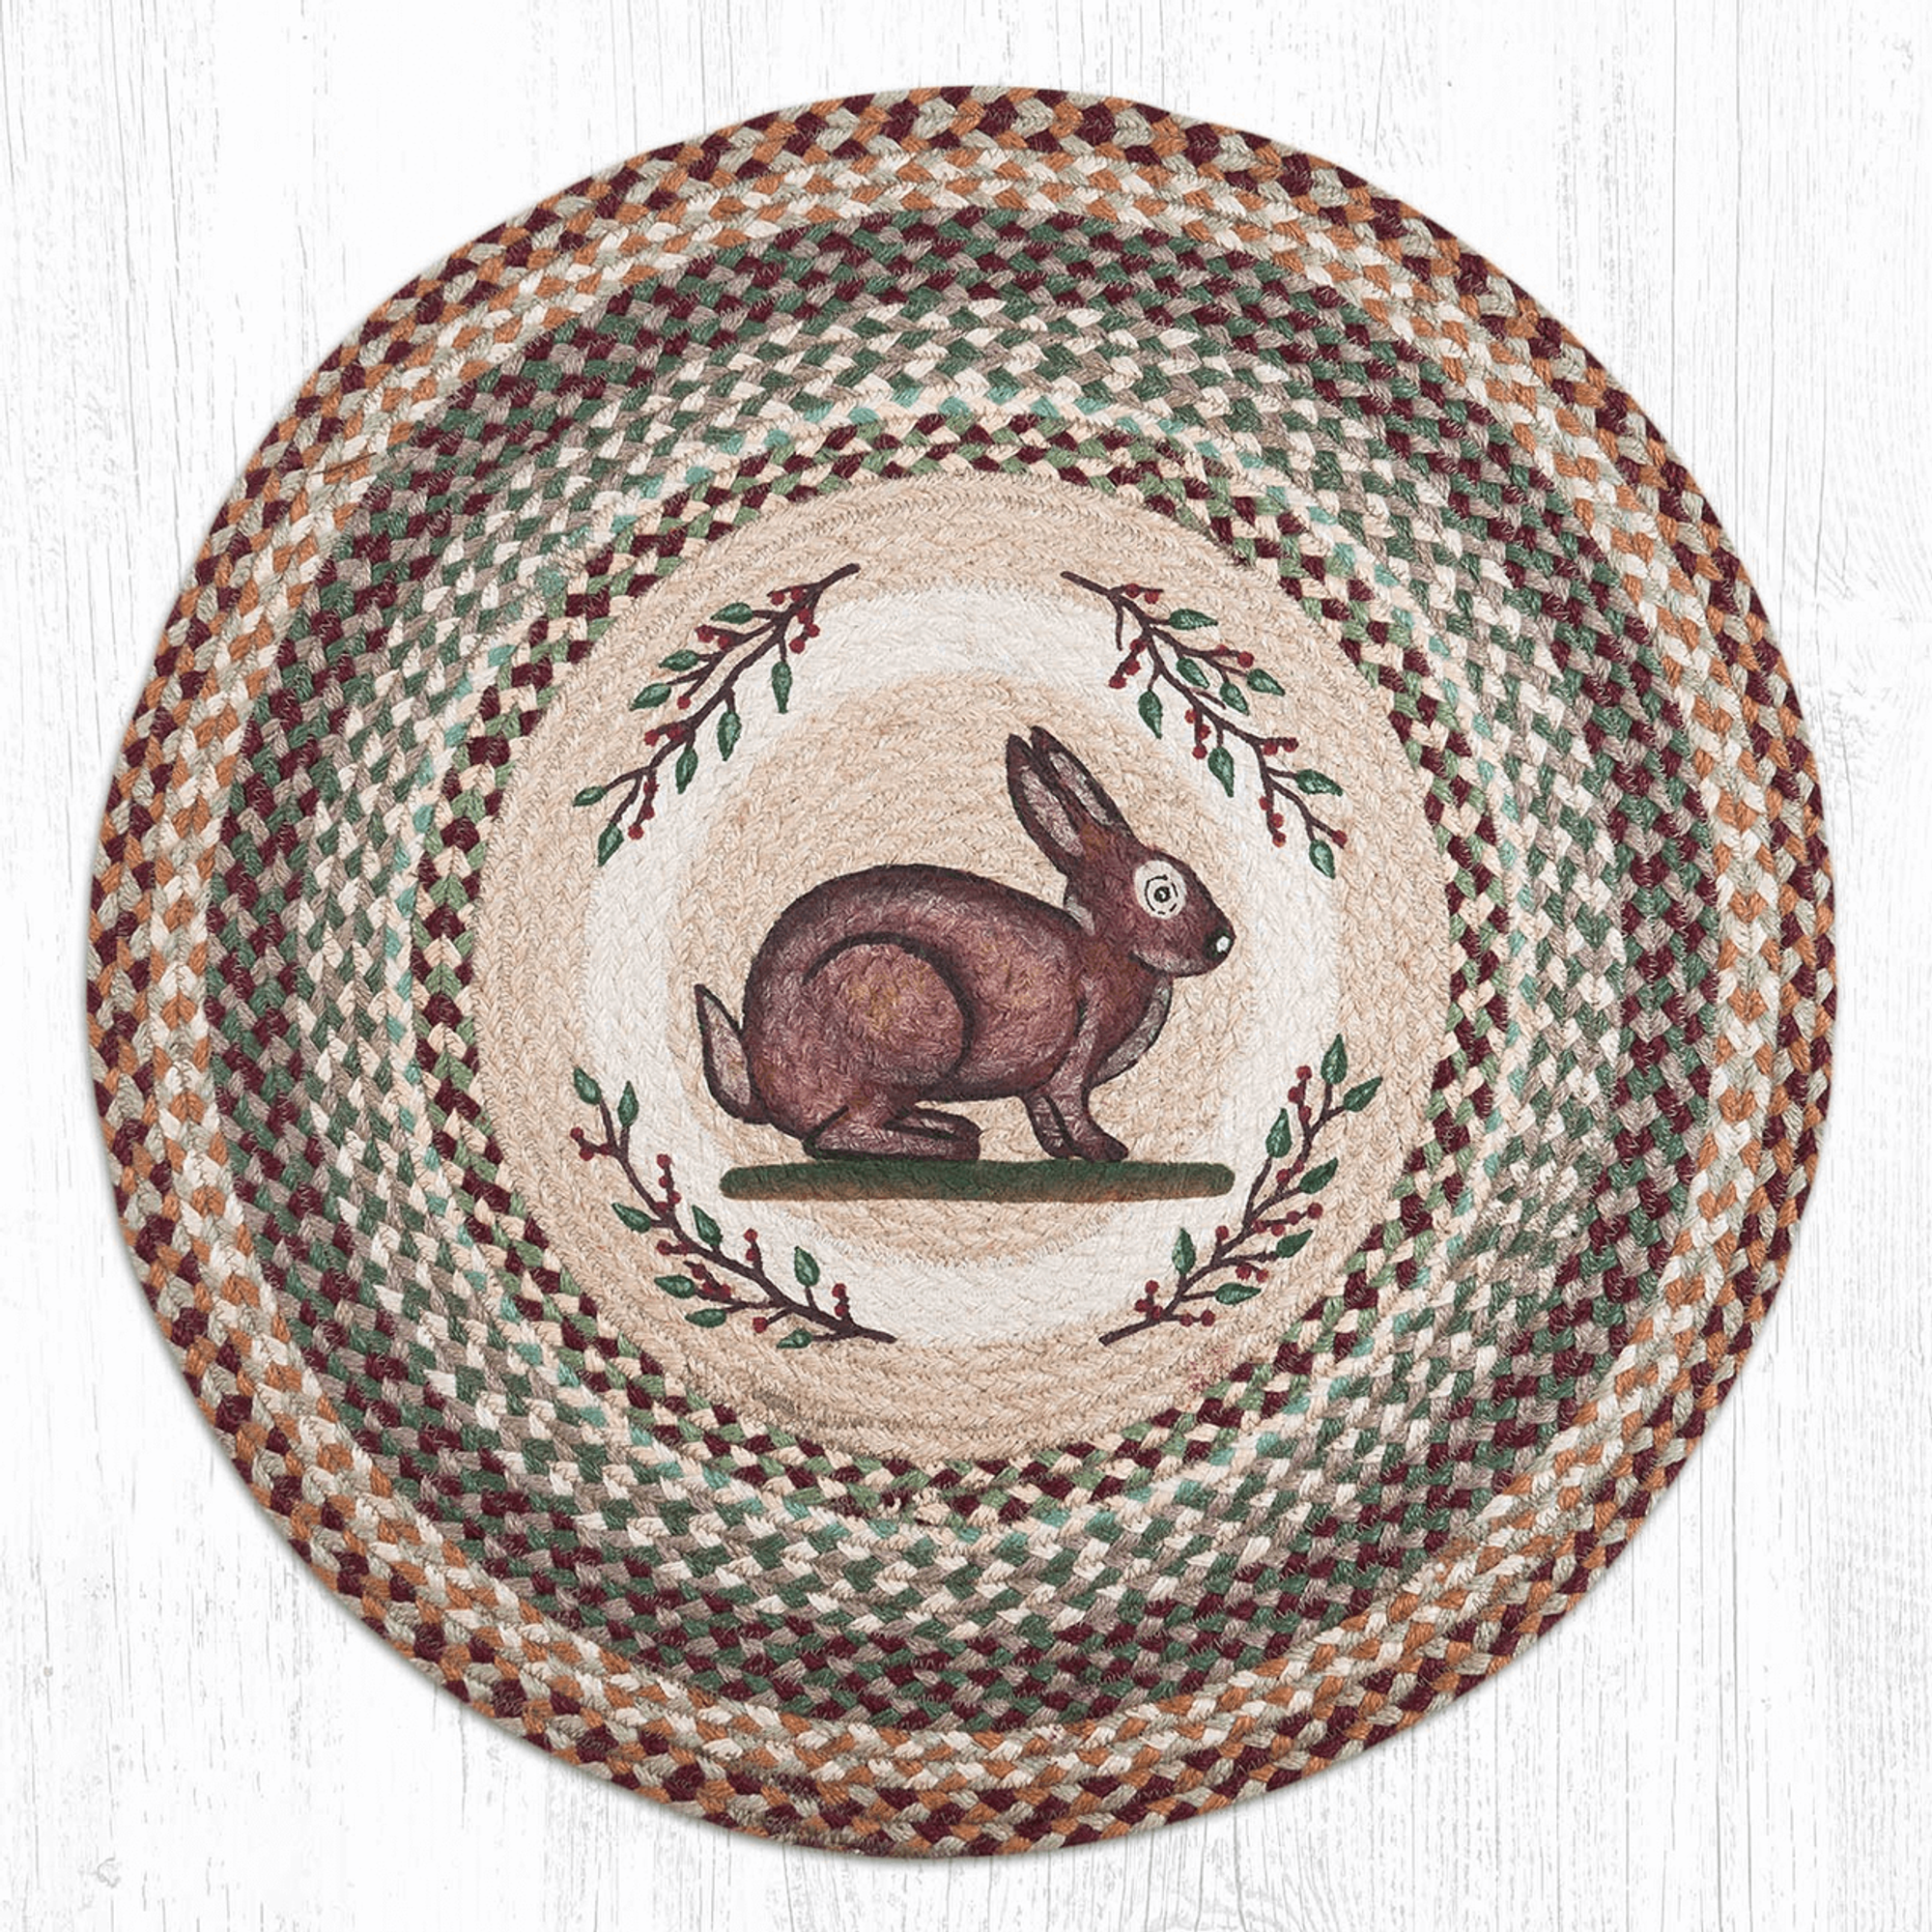 Rabbit Round Braided Rug Rabbit Jute Round Area Rug Capitol